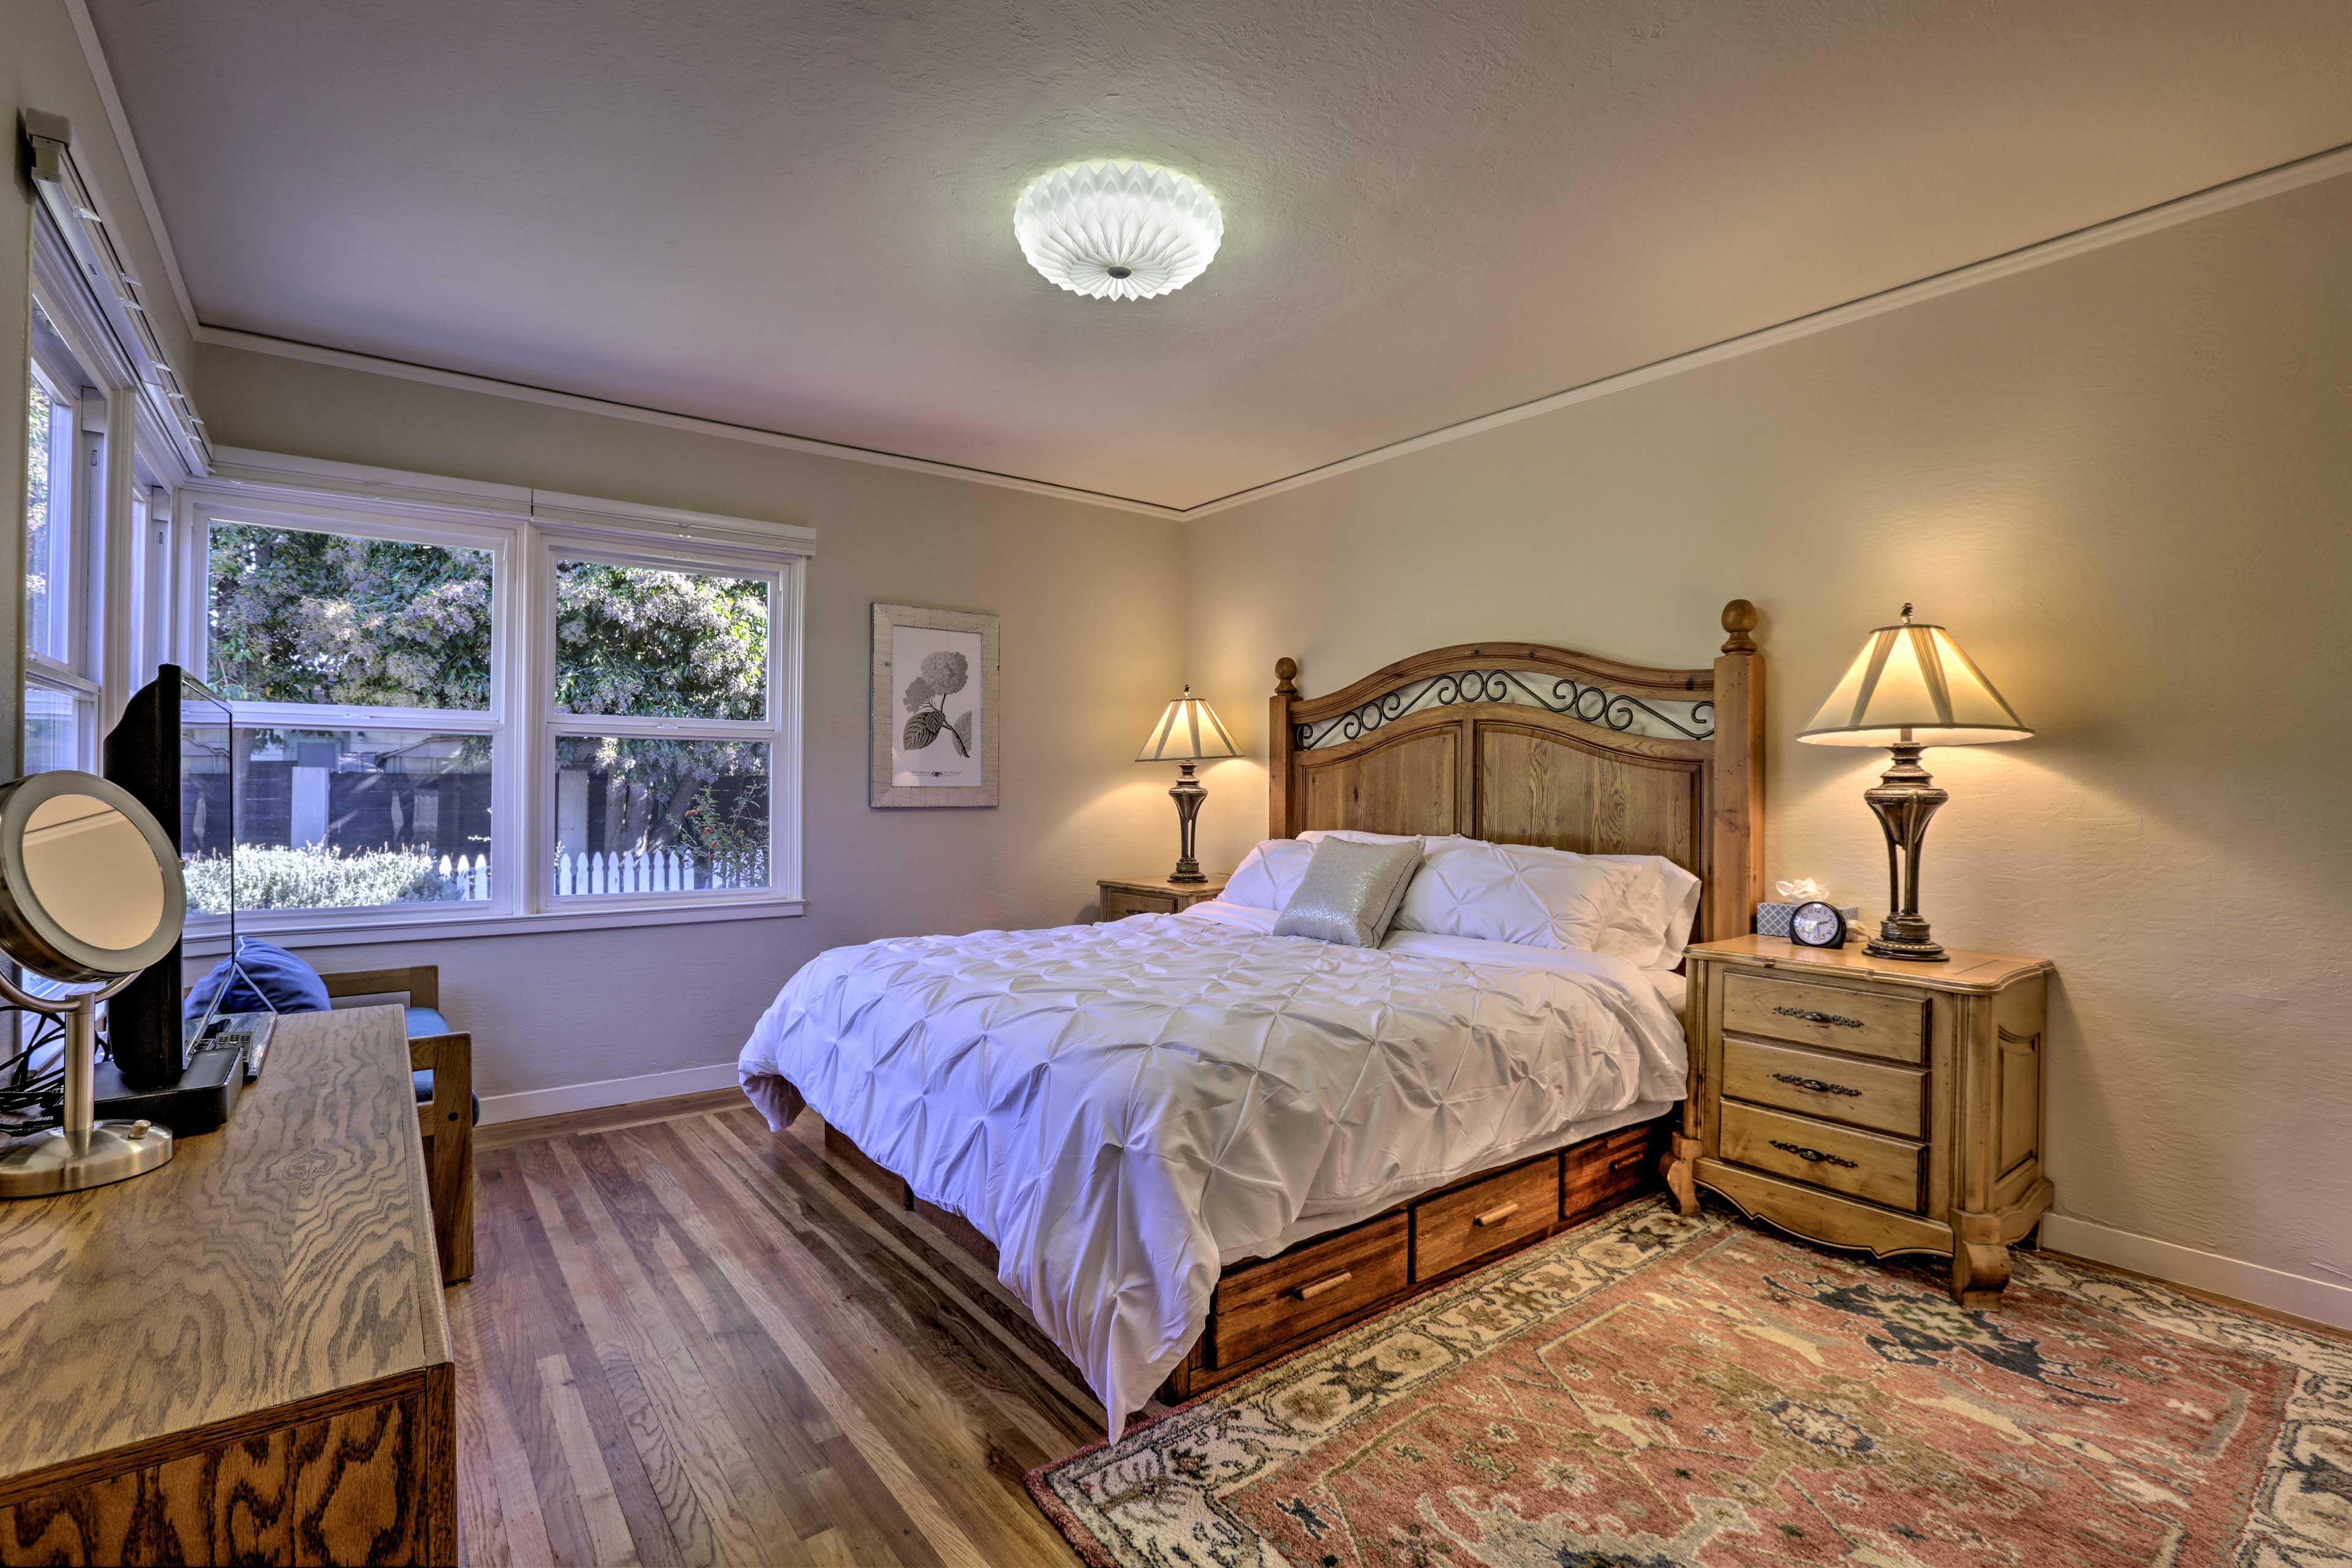 The master bedroom boasts a California king bed.